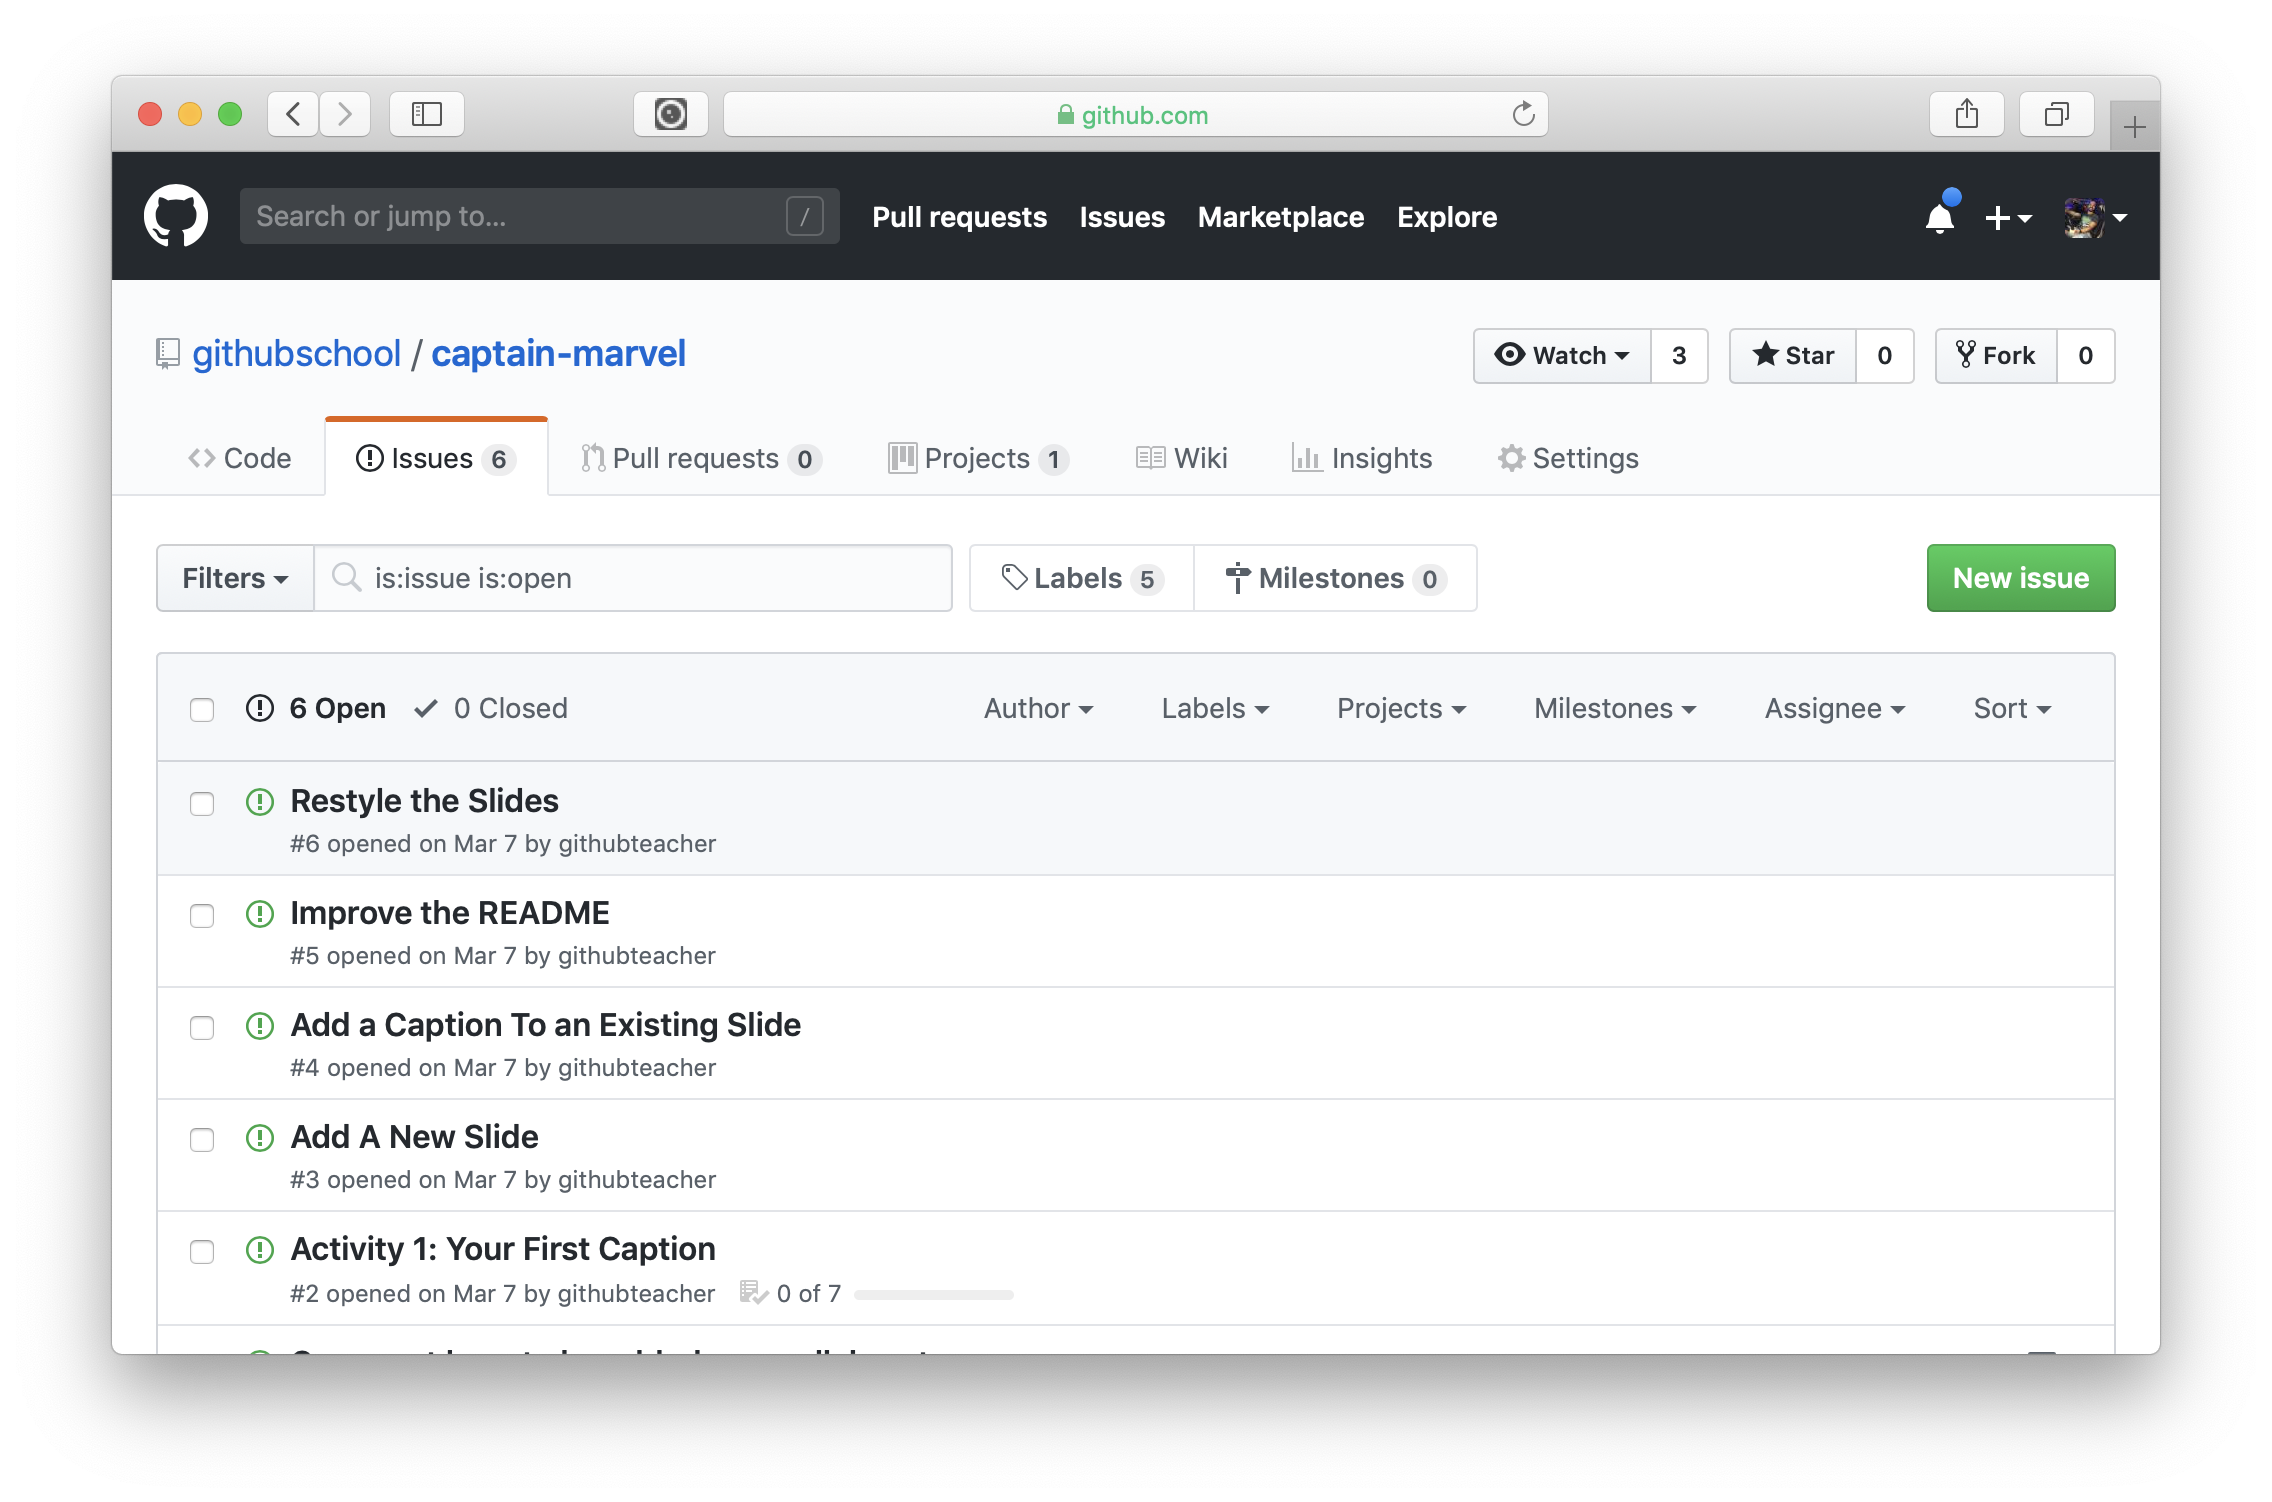 screenshot of a repository with 5 open issues, none without labels and all opened by @githubteacher. The issues are: restyle the slides, improve the readme, add a caption to an existing slide, add a new slide, activity 1: your first caption